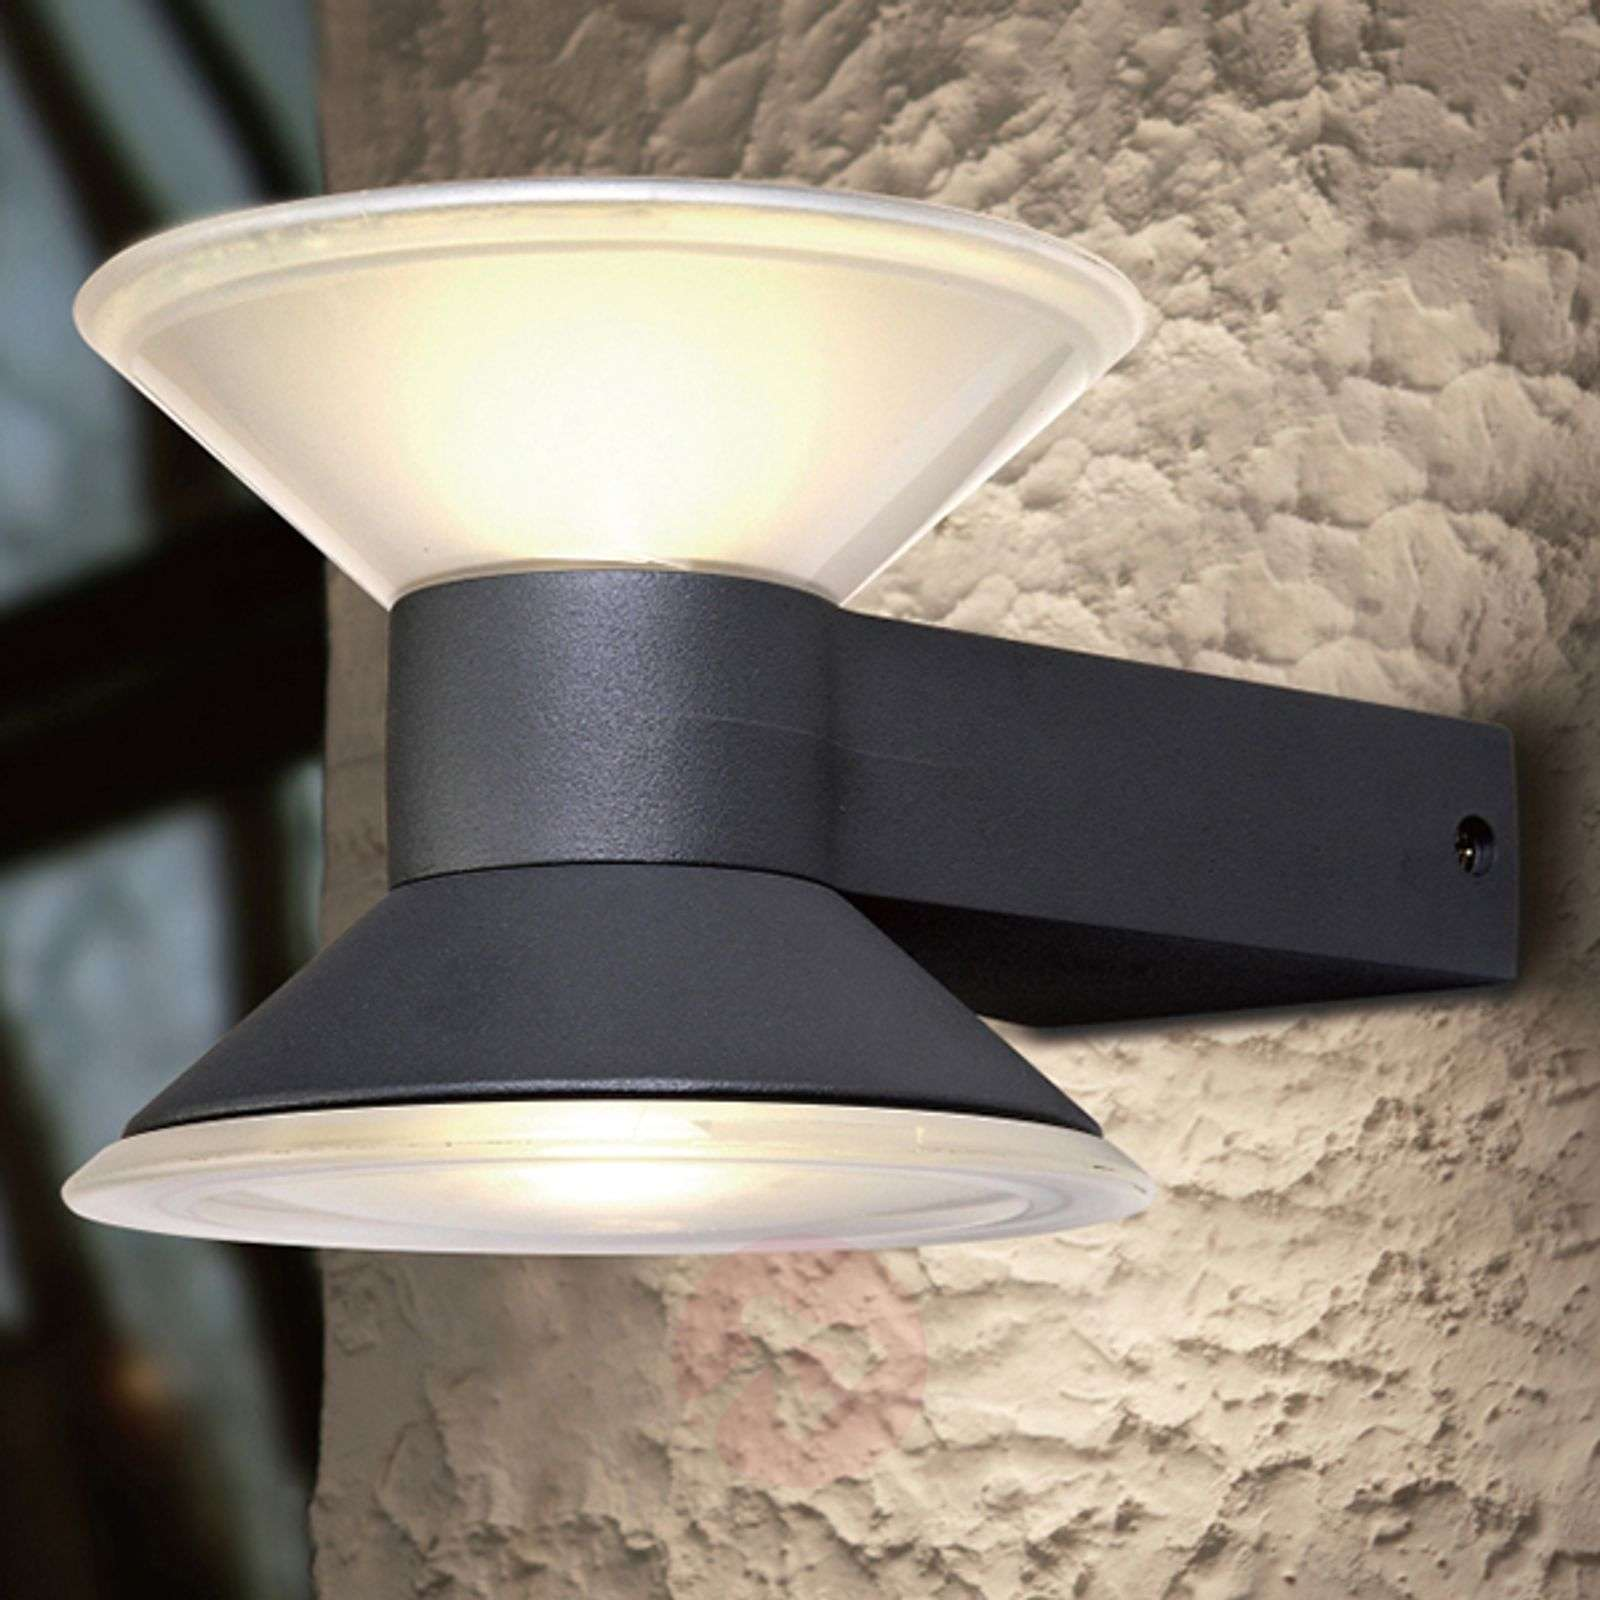 LED outdoor wandlamp Cone up and down-3006187-01